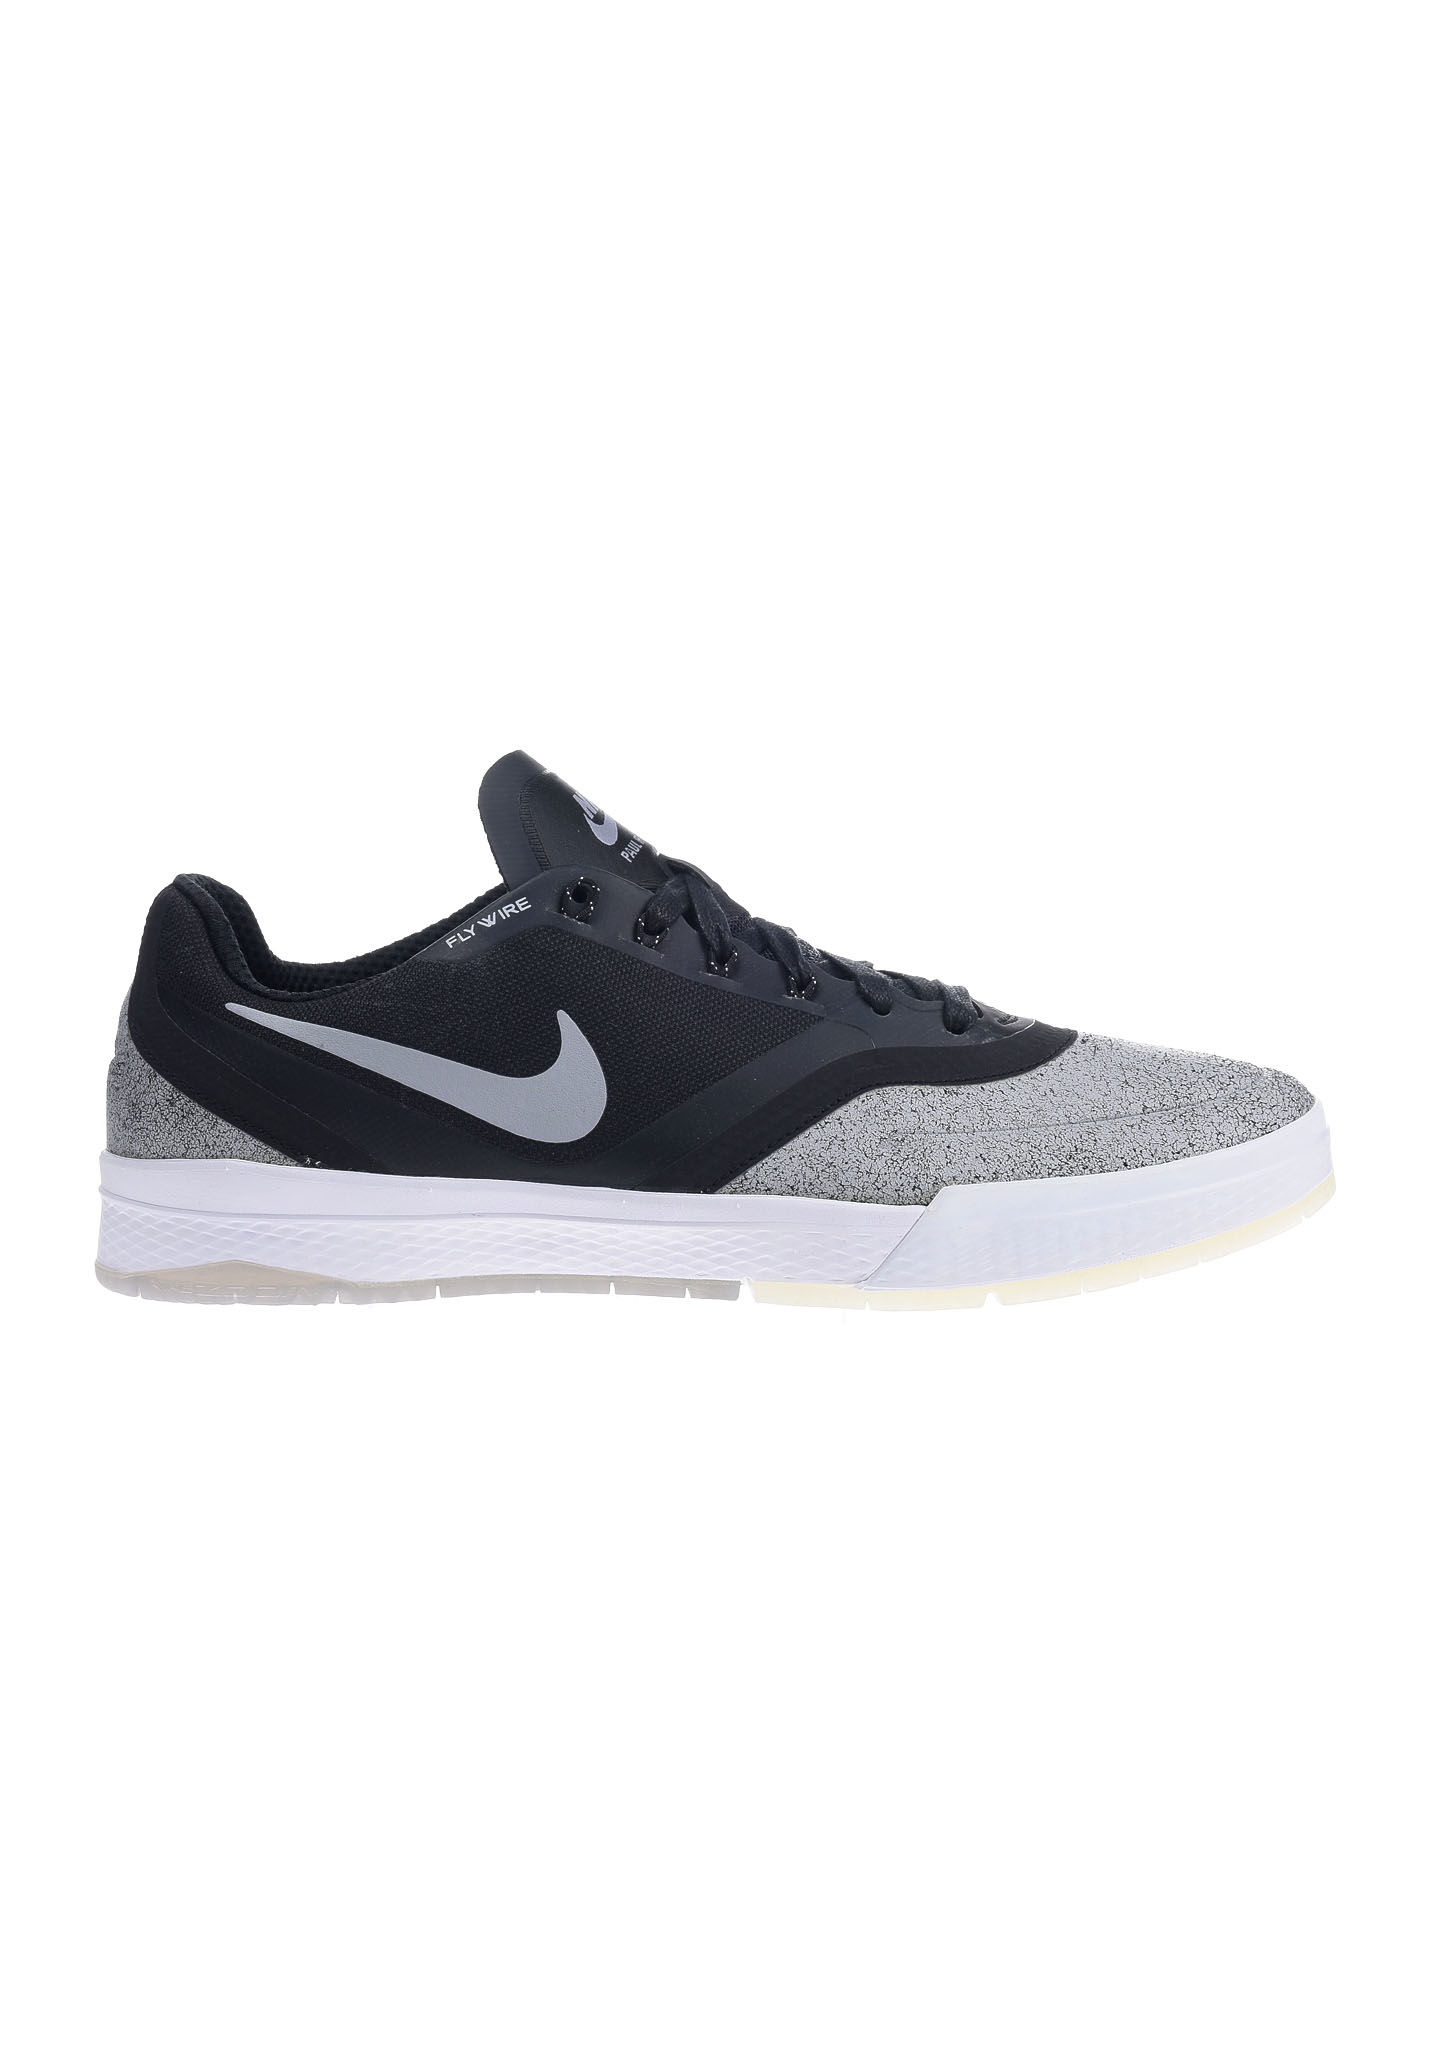 info for 681c3 5e2ae ... Elite nike sb paul rodriguez 9 flywire ...